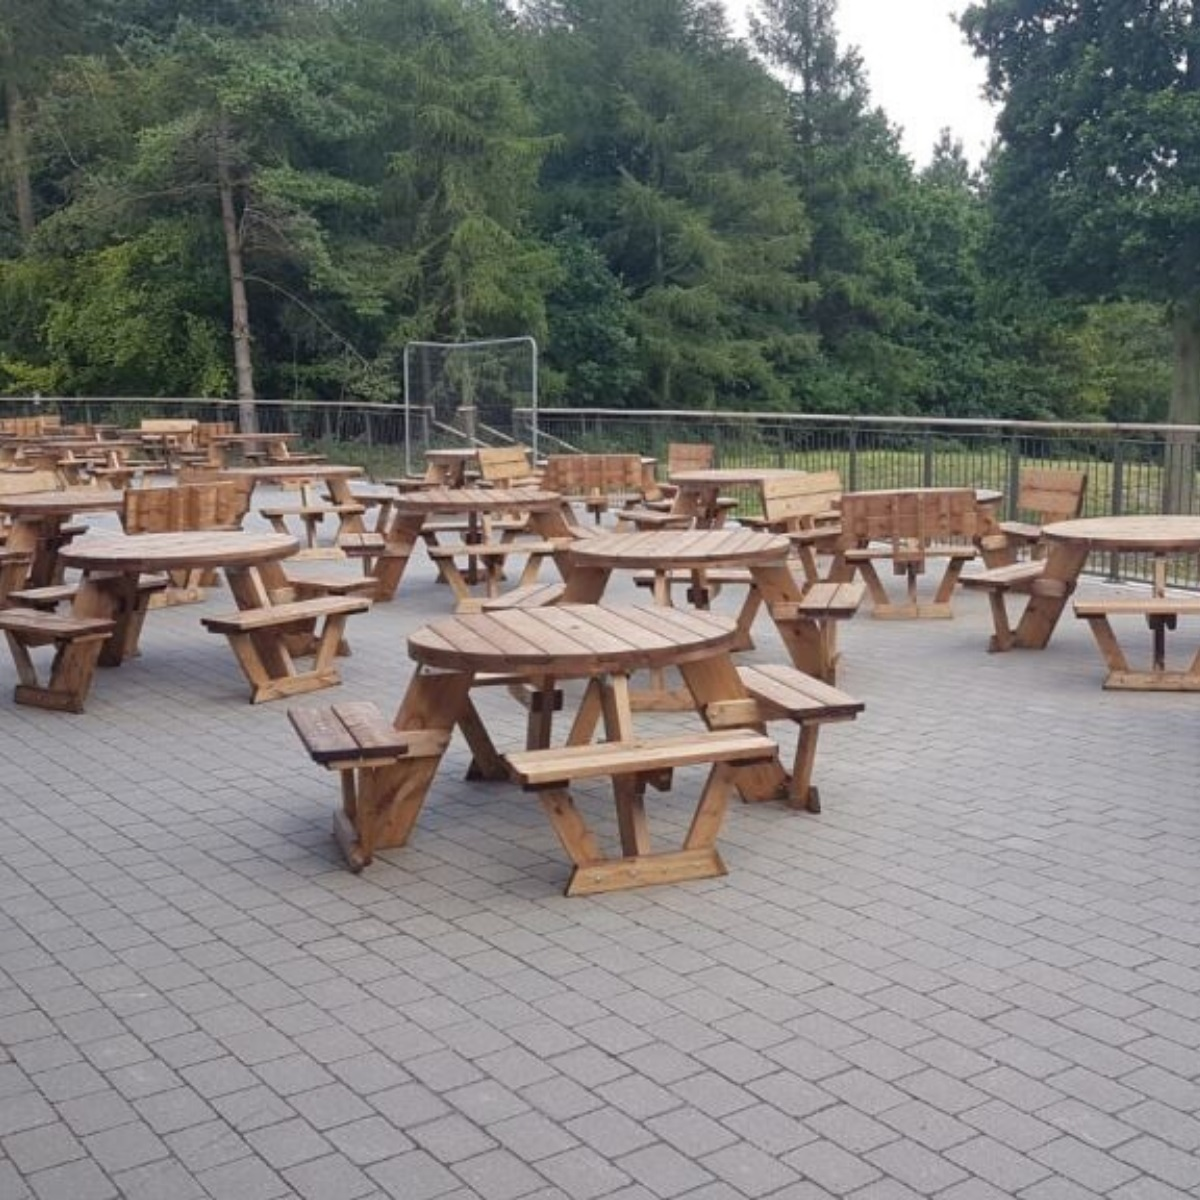 A Patio over looking the Chilterns Forest with a range of wooden 6 and 8 seater round picnic tables on it